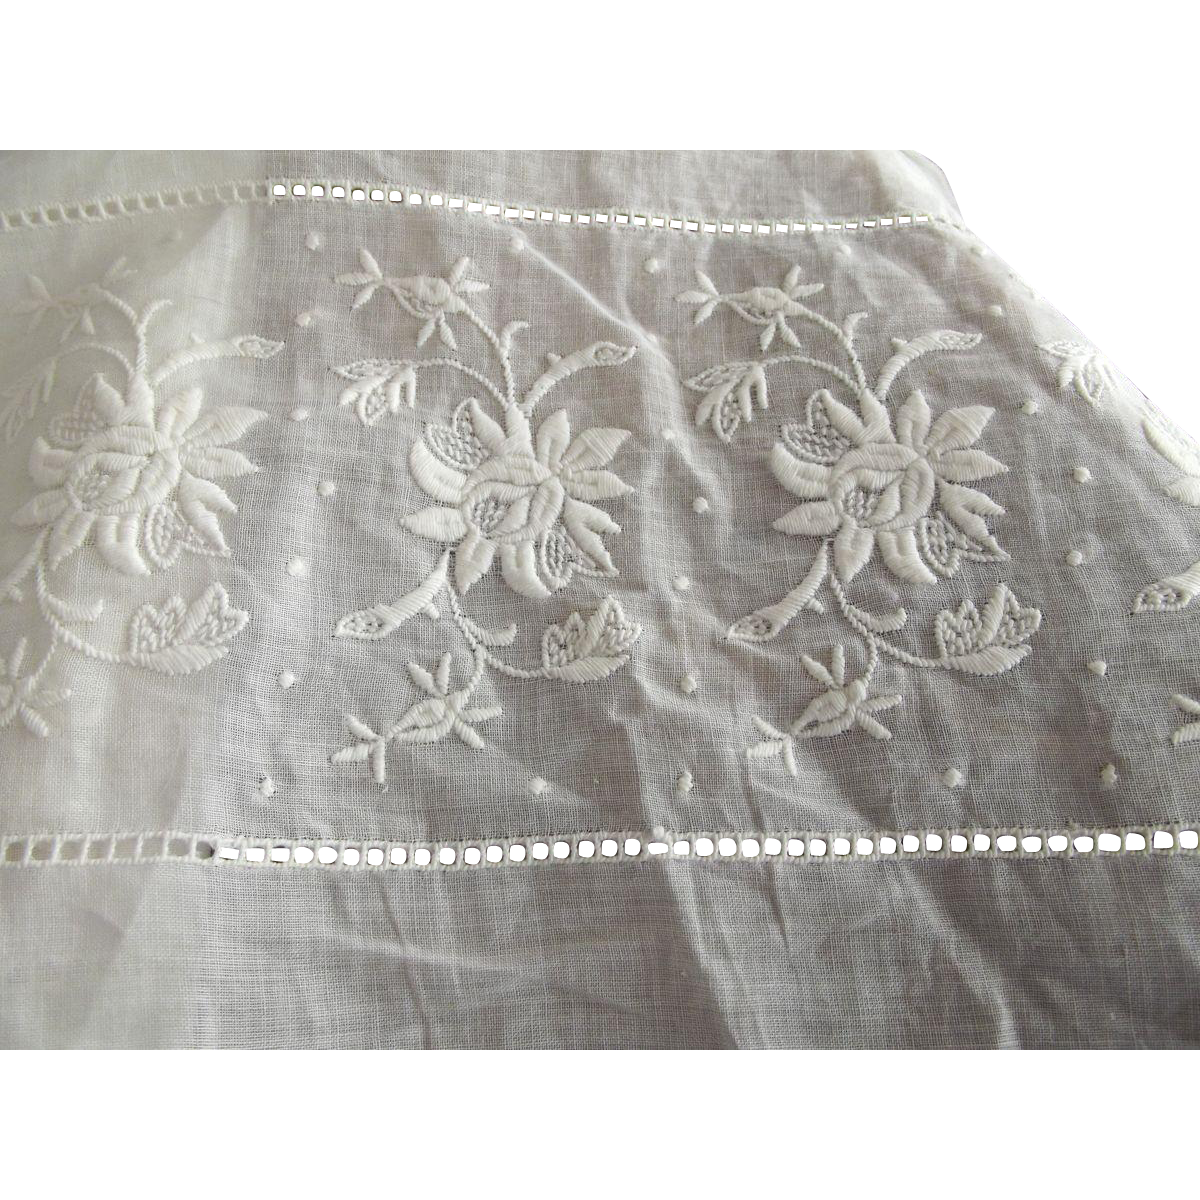 Wide Embroidered Insertion Trim For A Garment or Linen